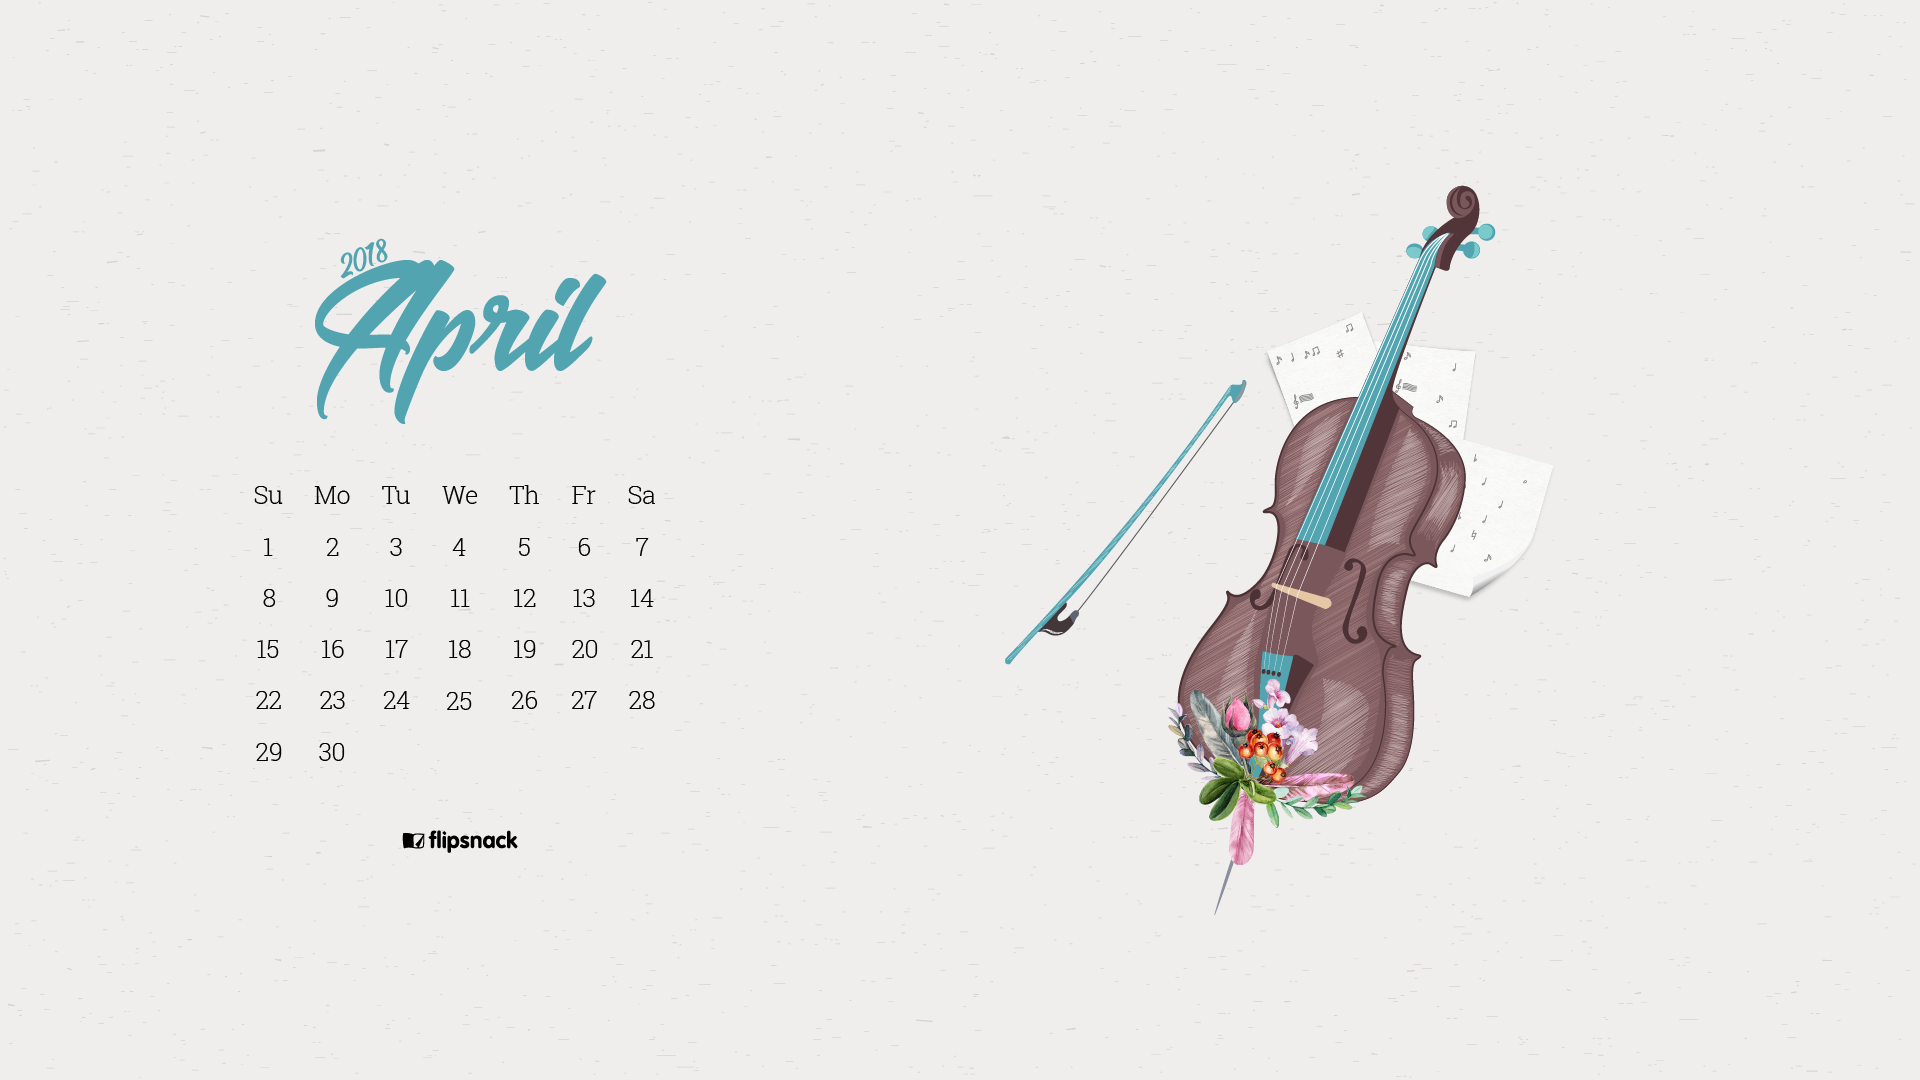 April 2018 wallpaper calendar for desktop background